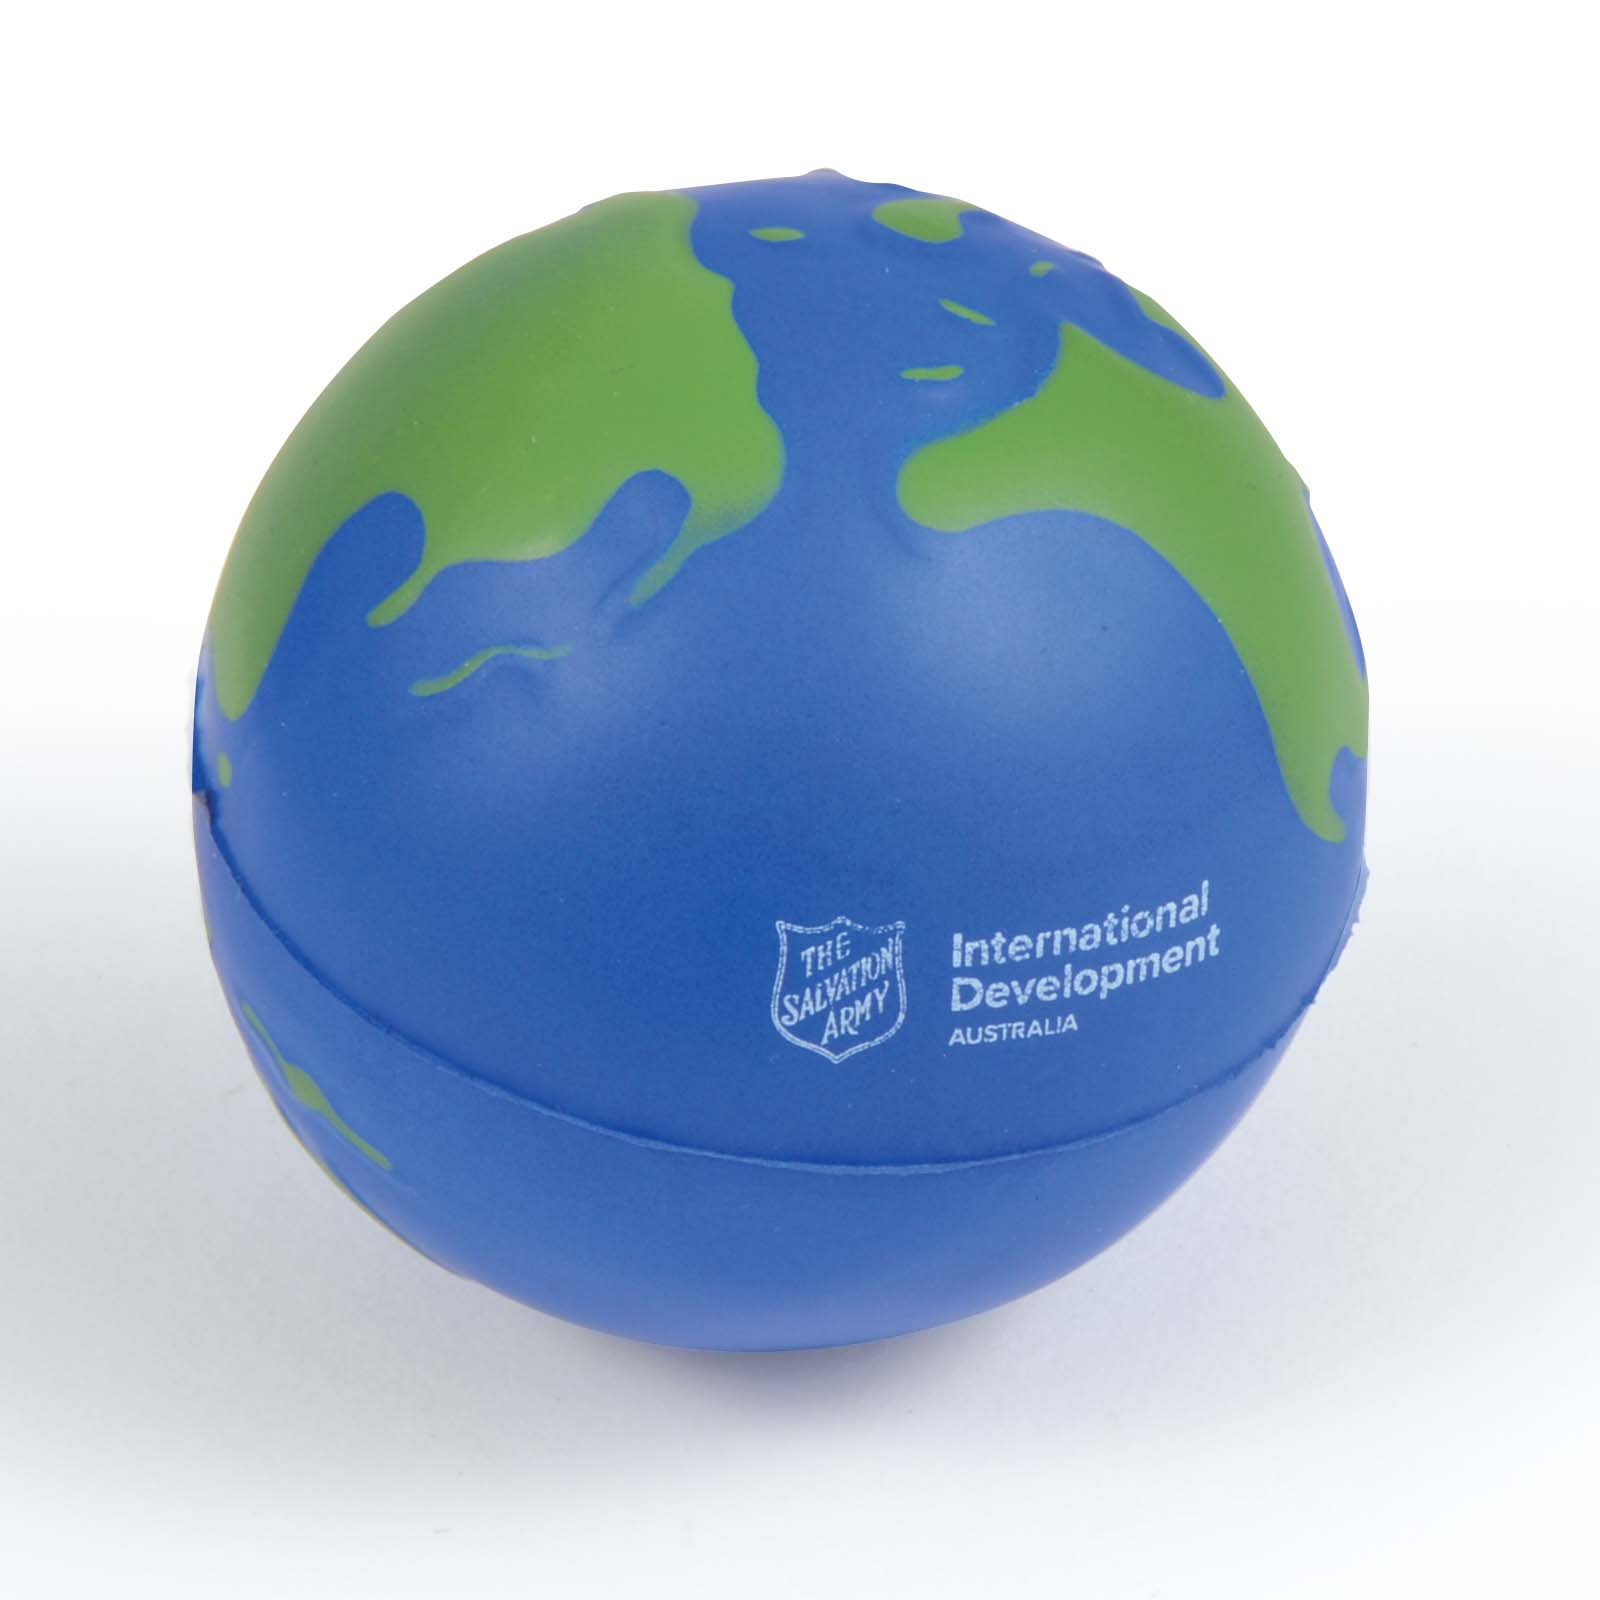 2 Colour World Globe Stress Reliever - Includes a 1 colour printed logo